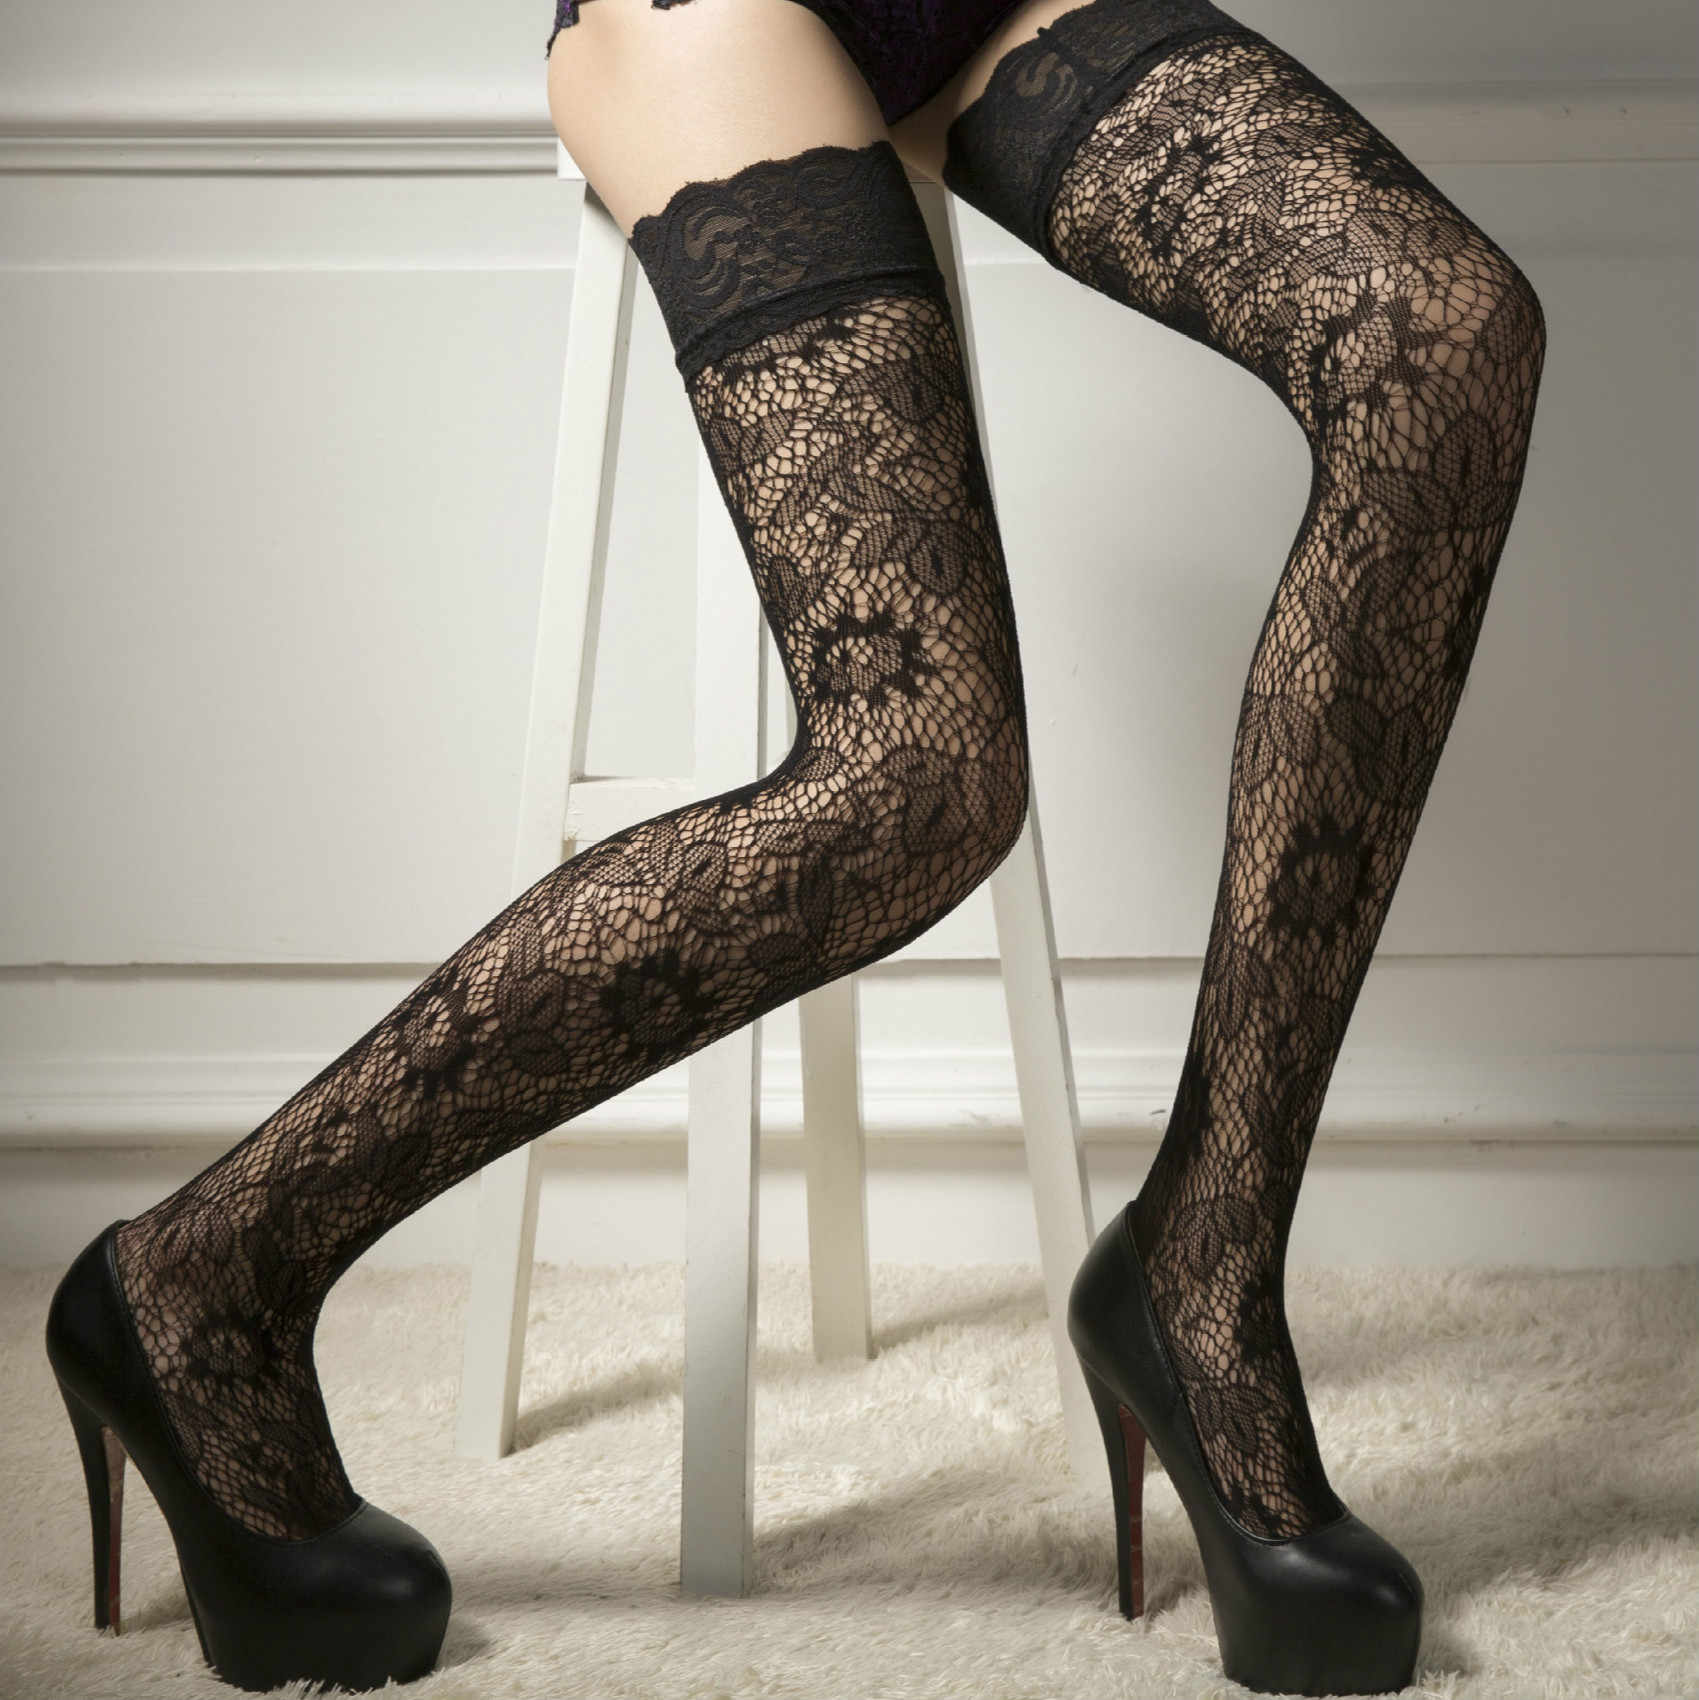 f0083aa6fe4 Sexy Lady Women Sheer Lace Stockings Thigh-High Hold-ups Stocking Leggings  Pantyhose 2019